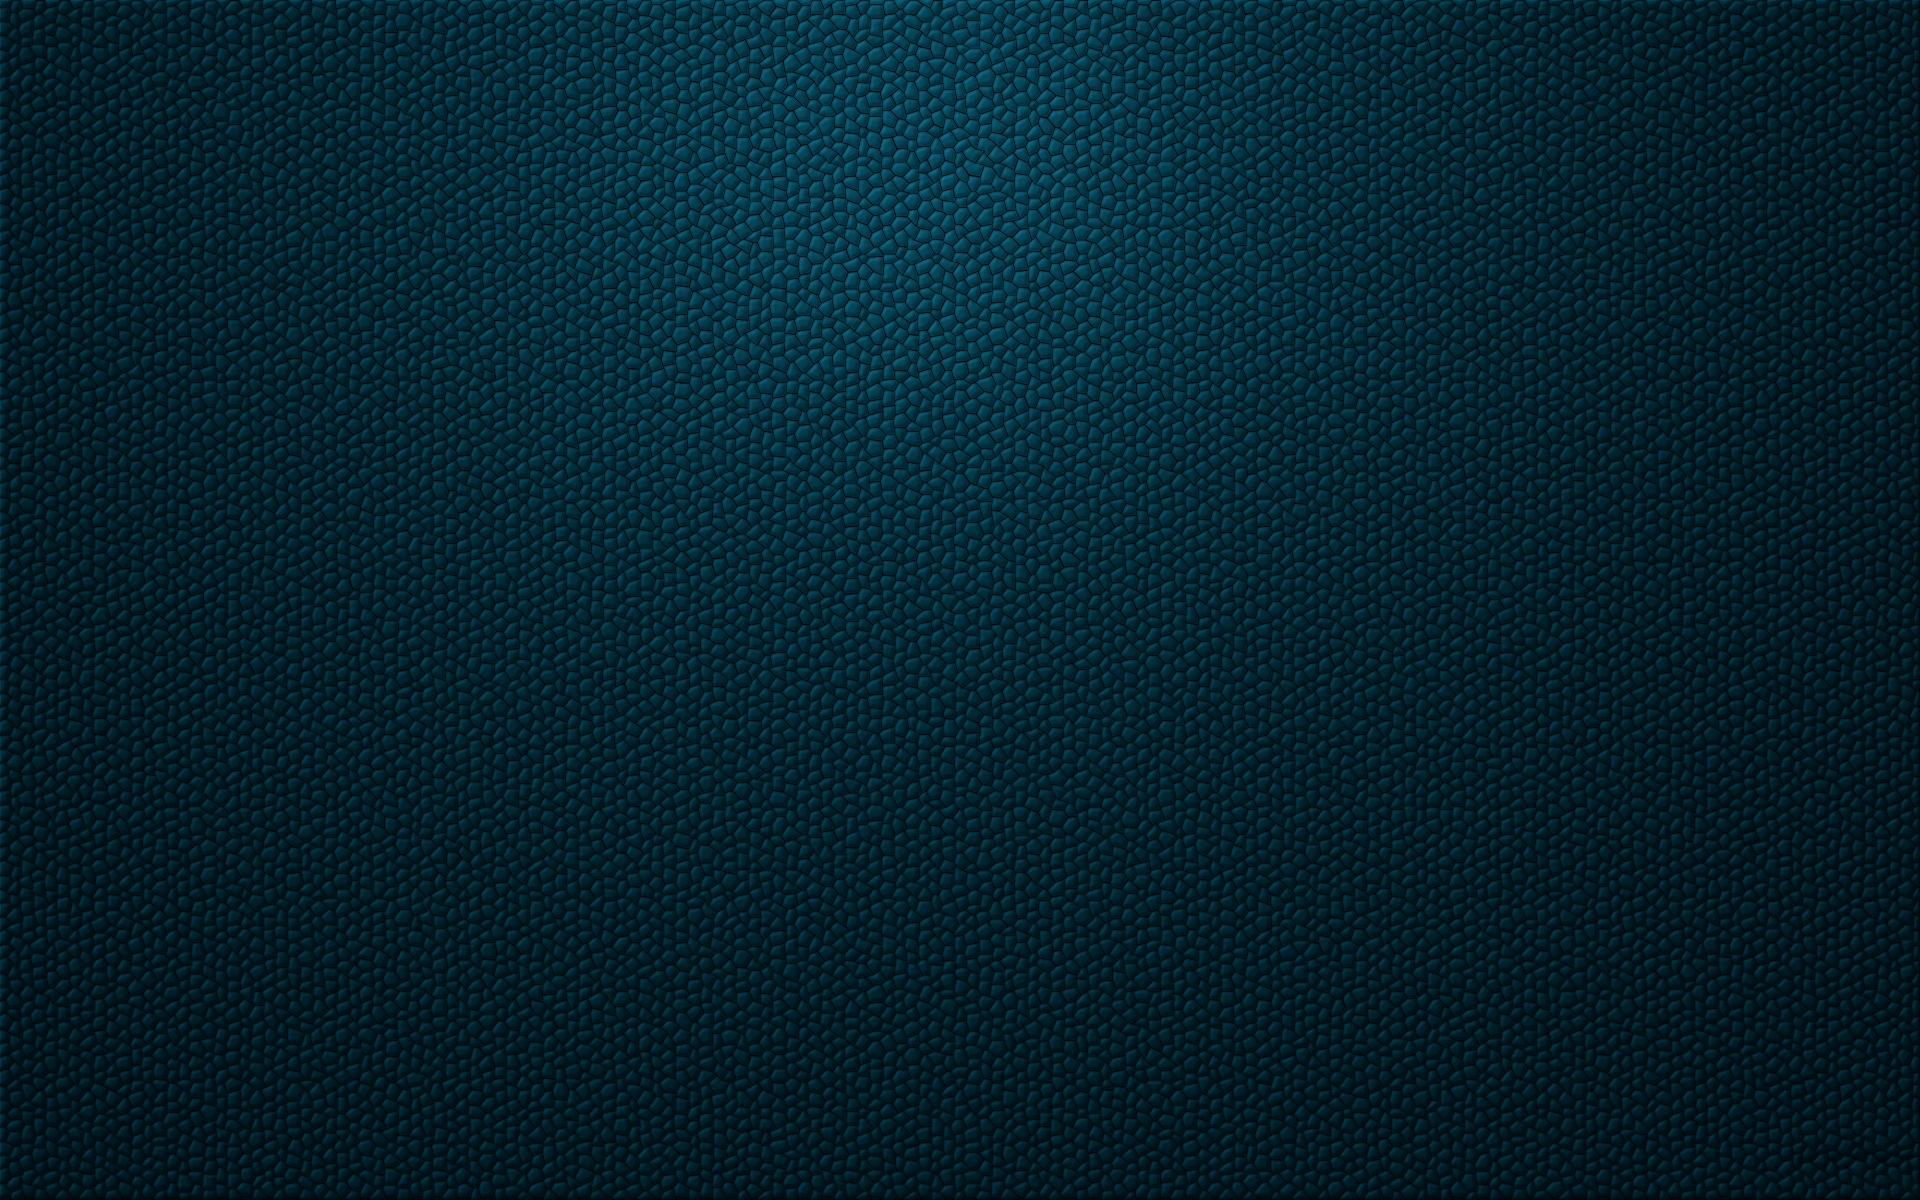 rubber texture background, texture rubber, download photo, background, texture